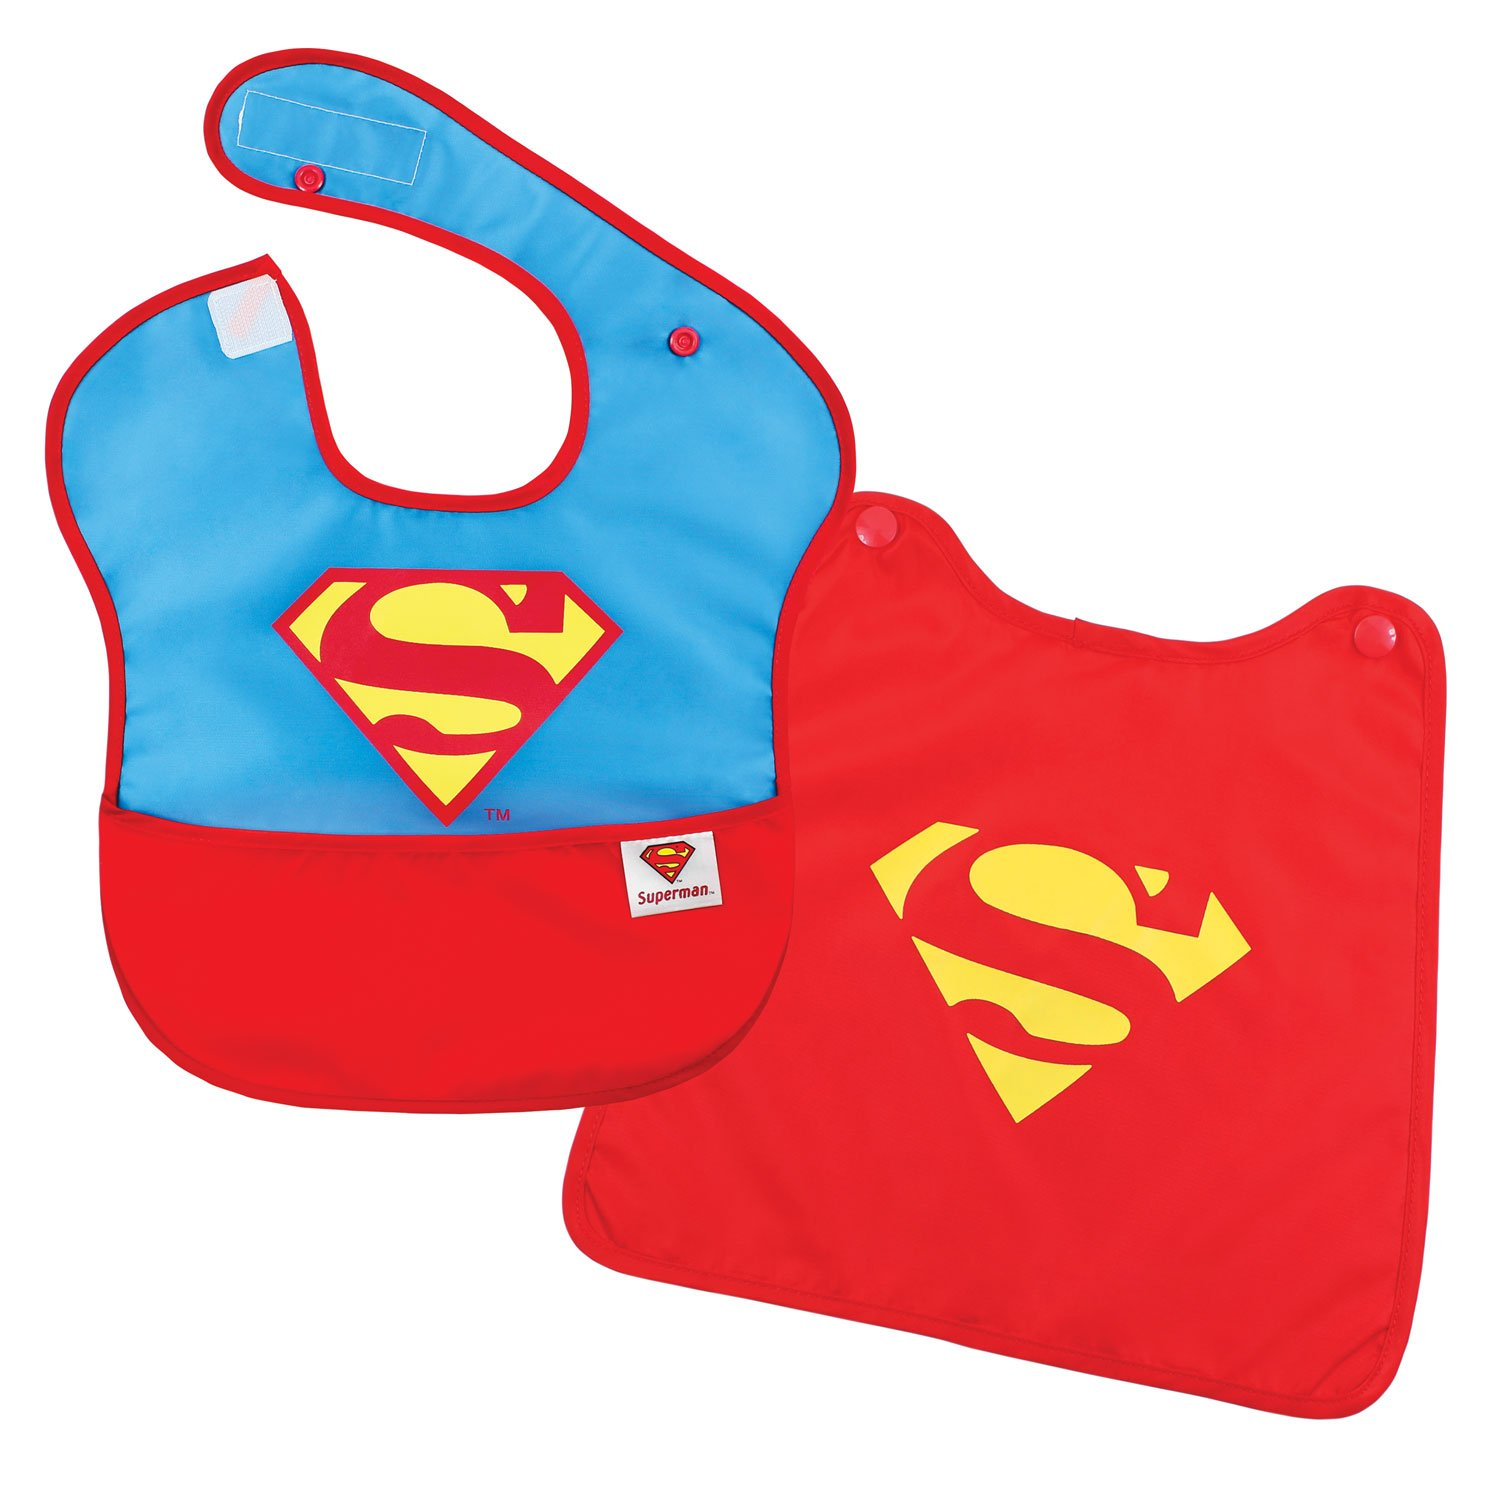 Bumkins DC Comics Superman SuperBib, Baby Bib, With Cape, Waterproof, Washable, Stain and Odor Resistant, 6-24 Months SCP-WBSM